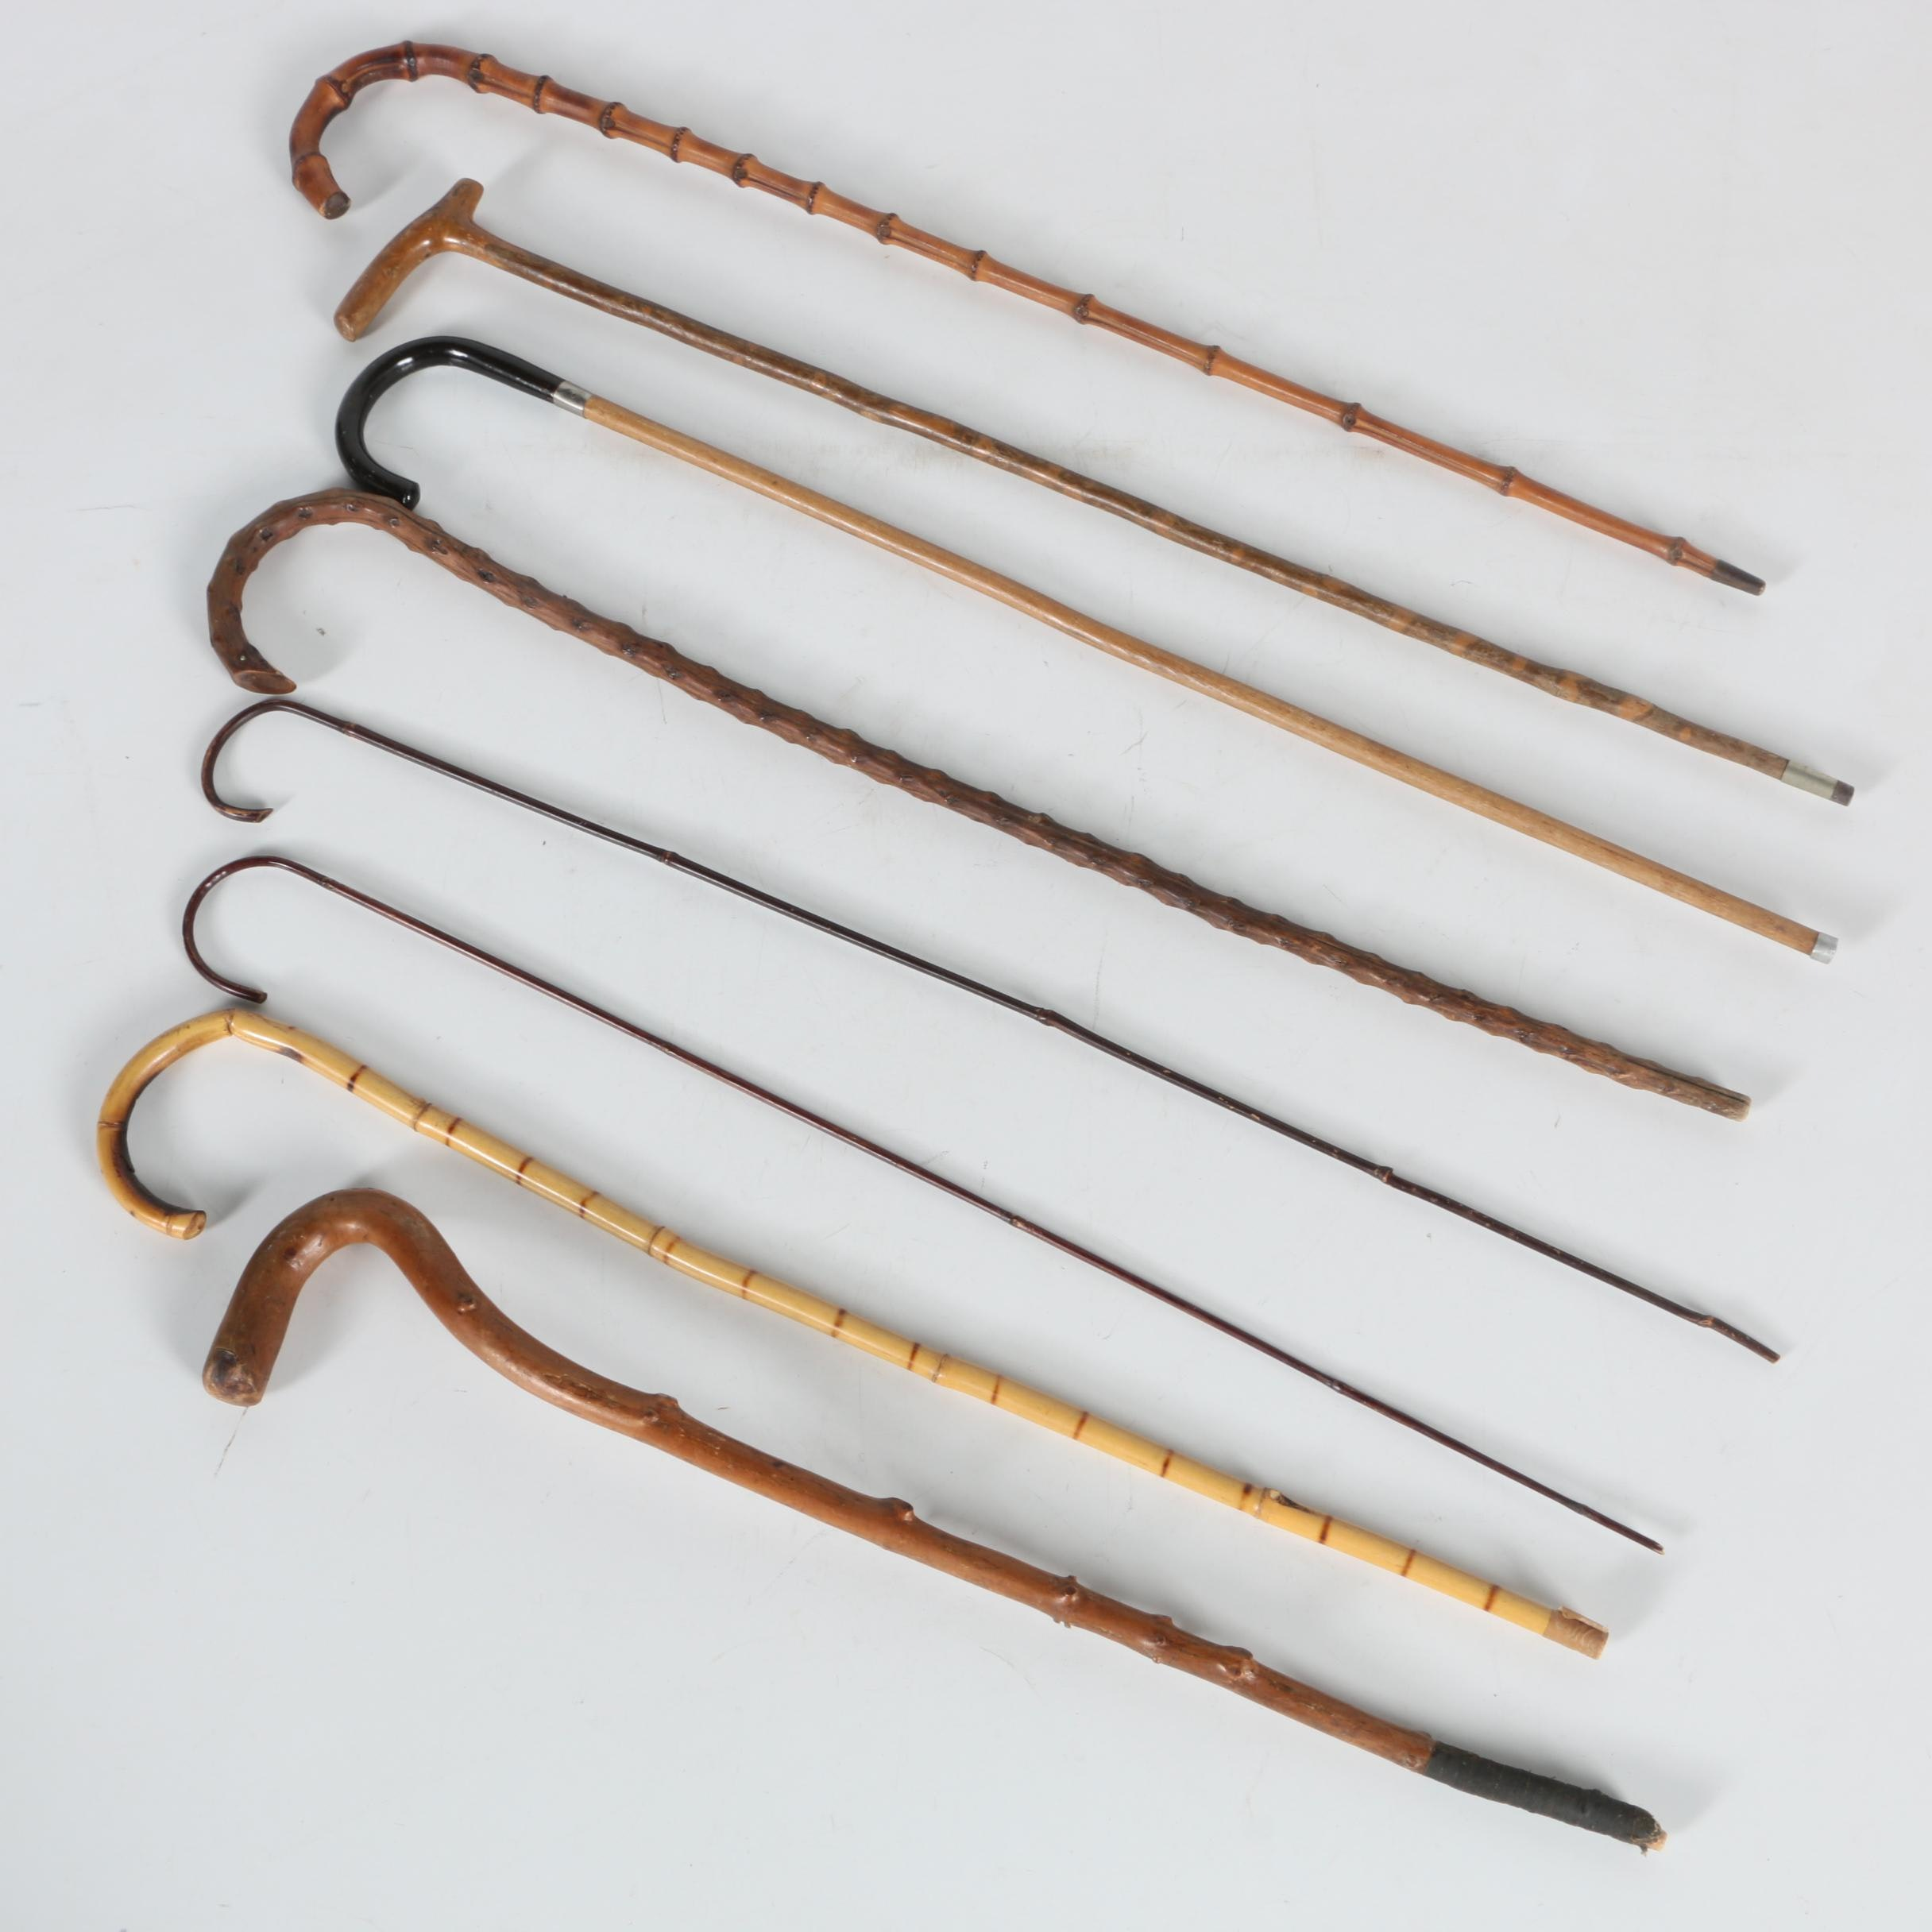 Wooden Cane Collection